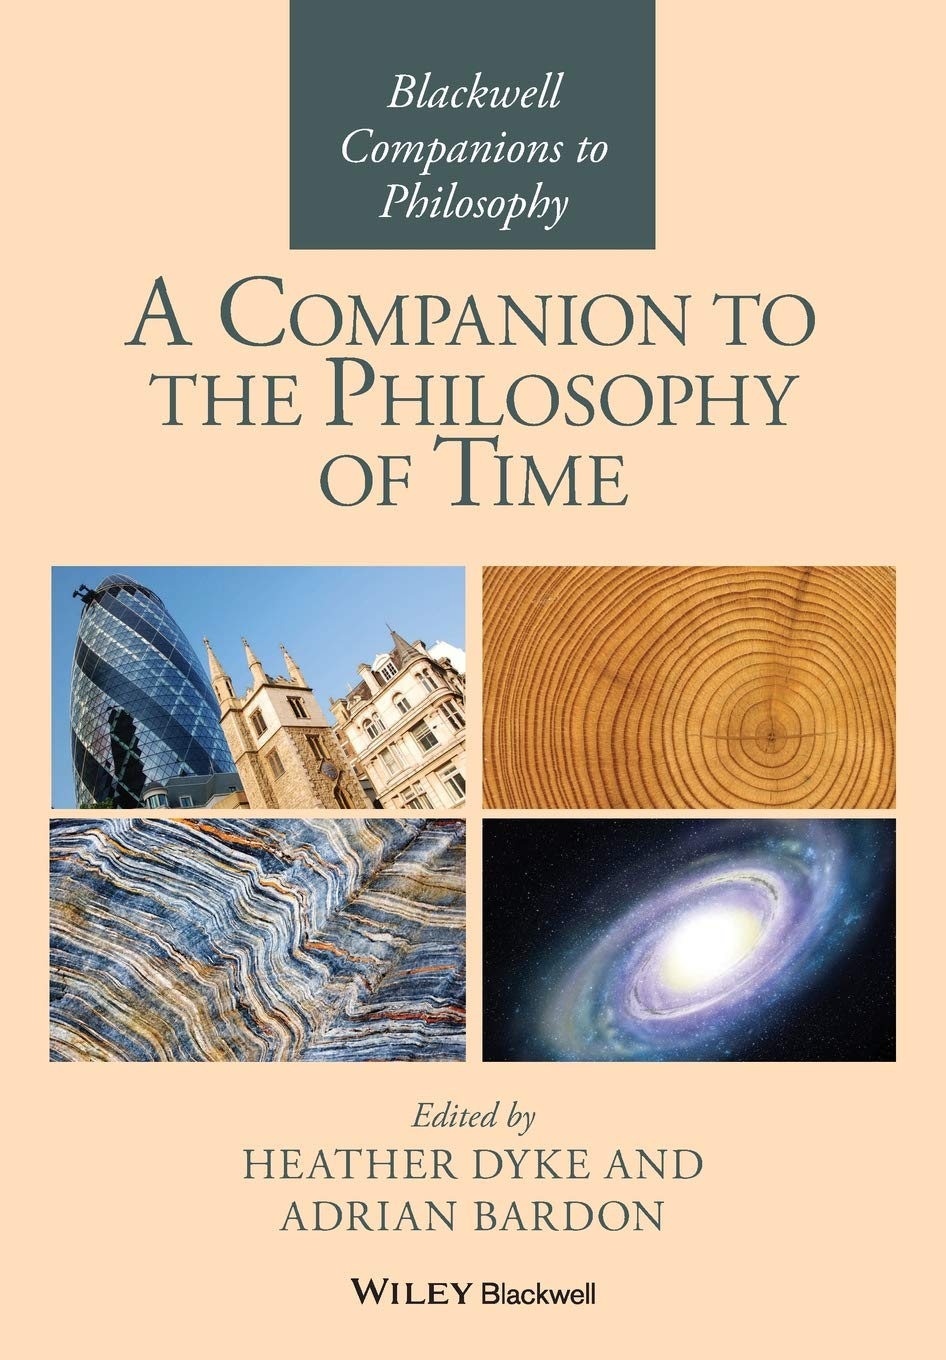 A Companion To The Philosophy Of Time (Blackwell Companions To Philosophy)